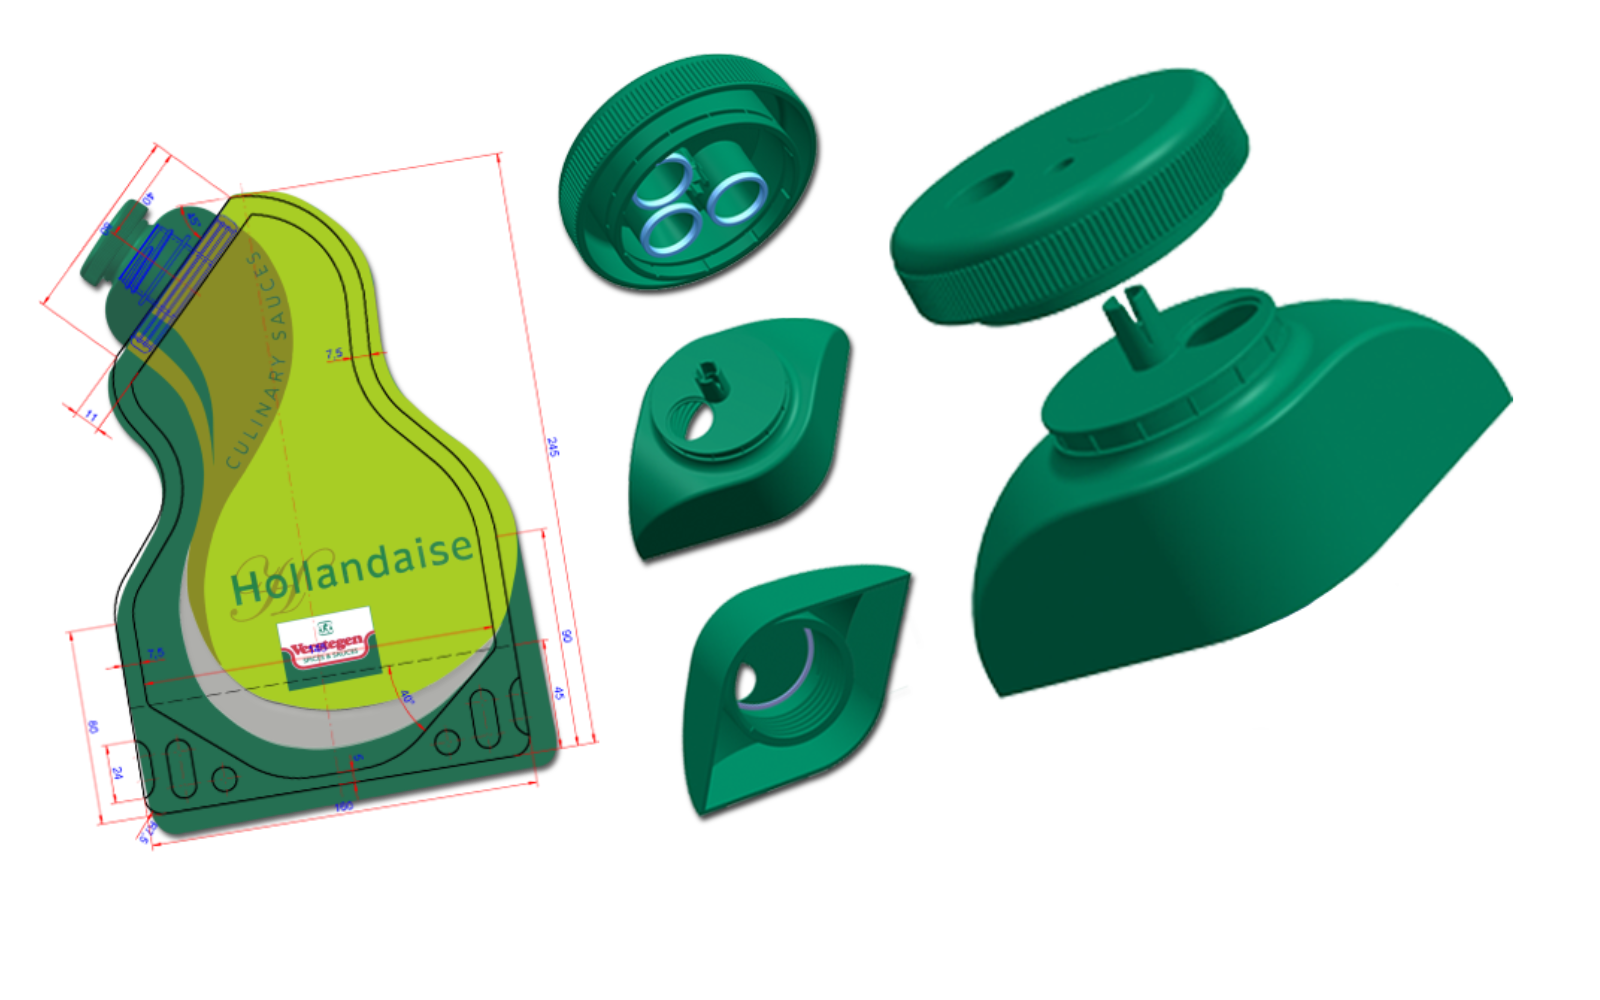 Verstegen sauce cap shown at different angles